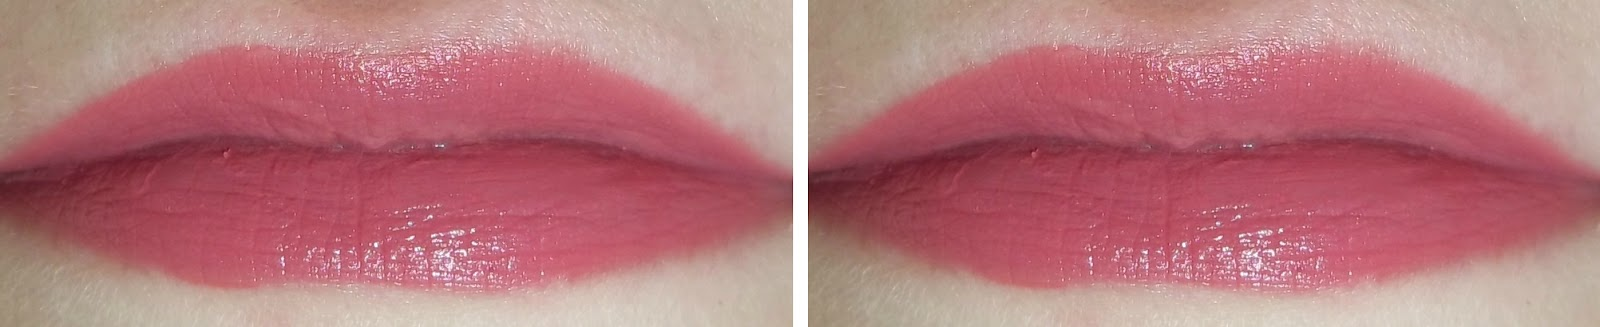 Bourjois Nude-ist Rouge Edition Velvet lipstick, Bourjois, lip gloss, lipstick, make up, pink, review, swatches, UK beauty blog